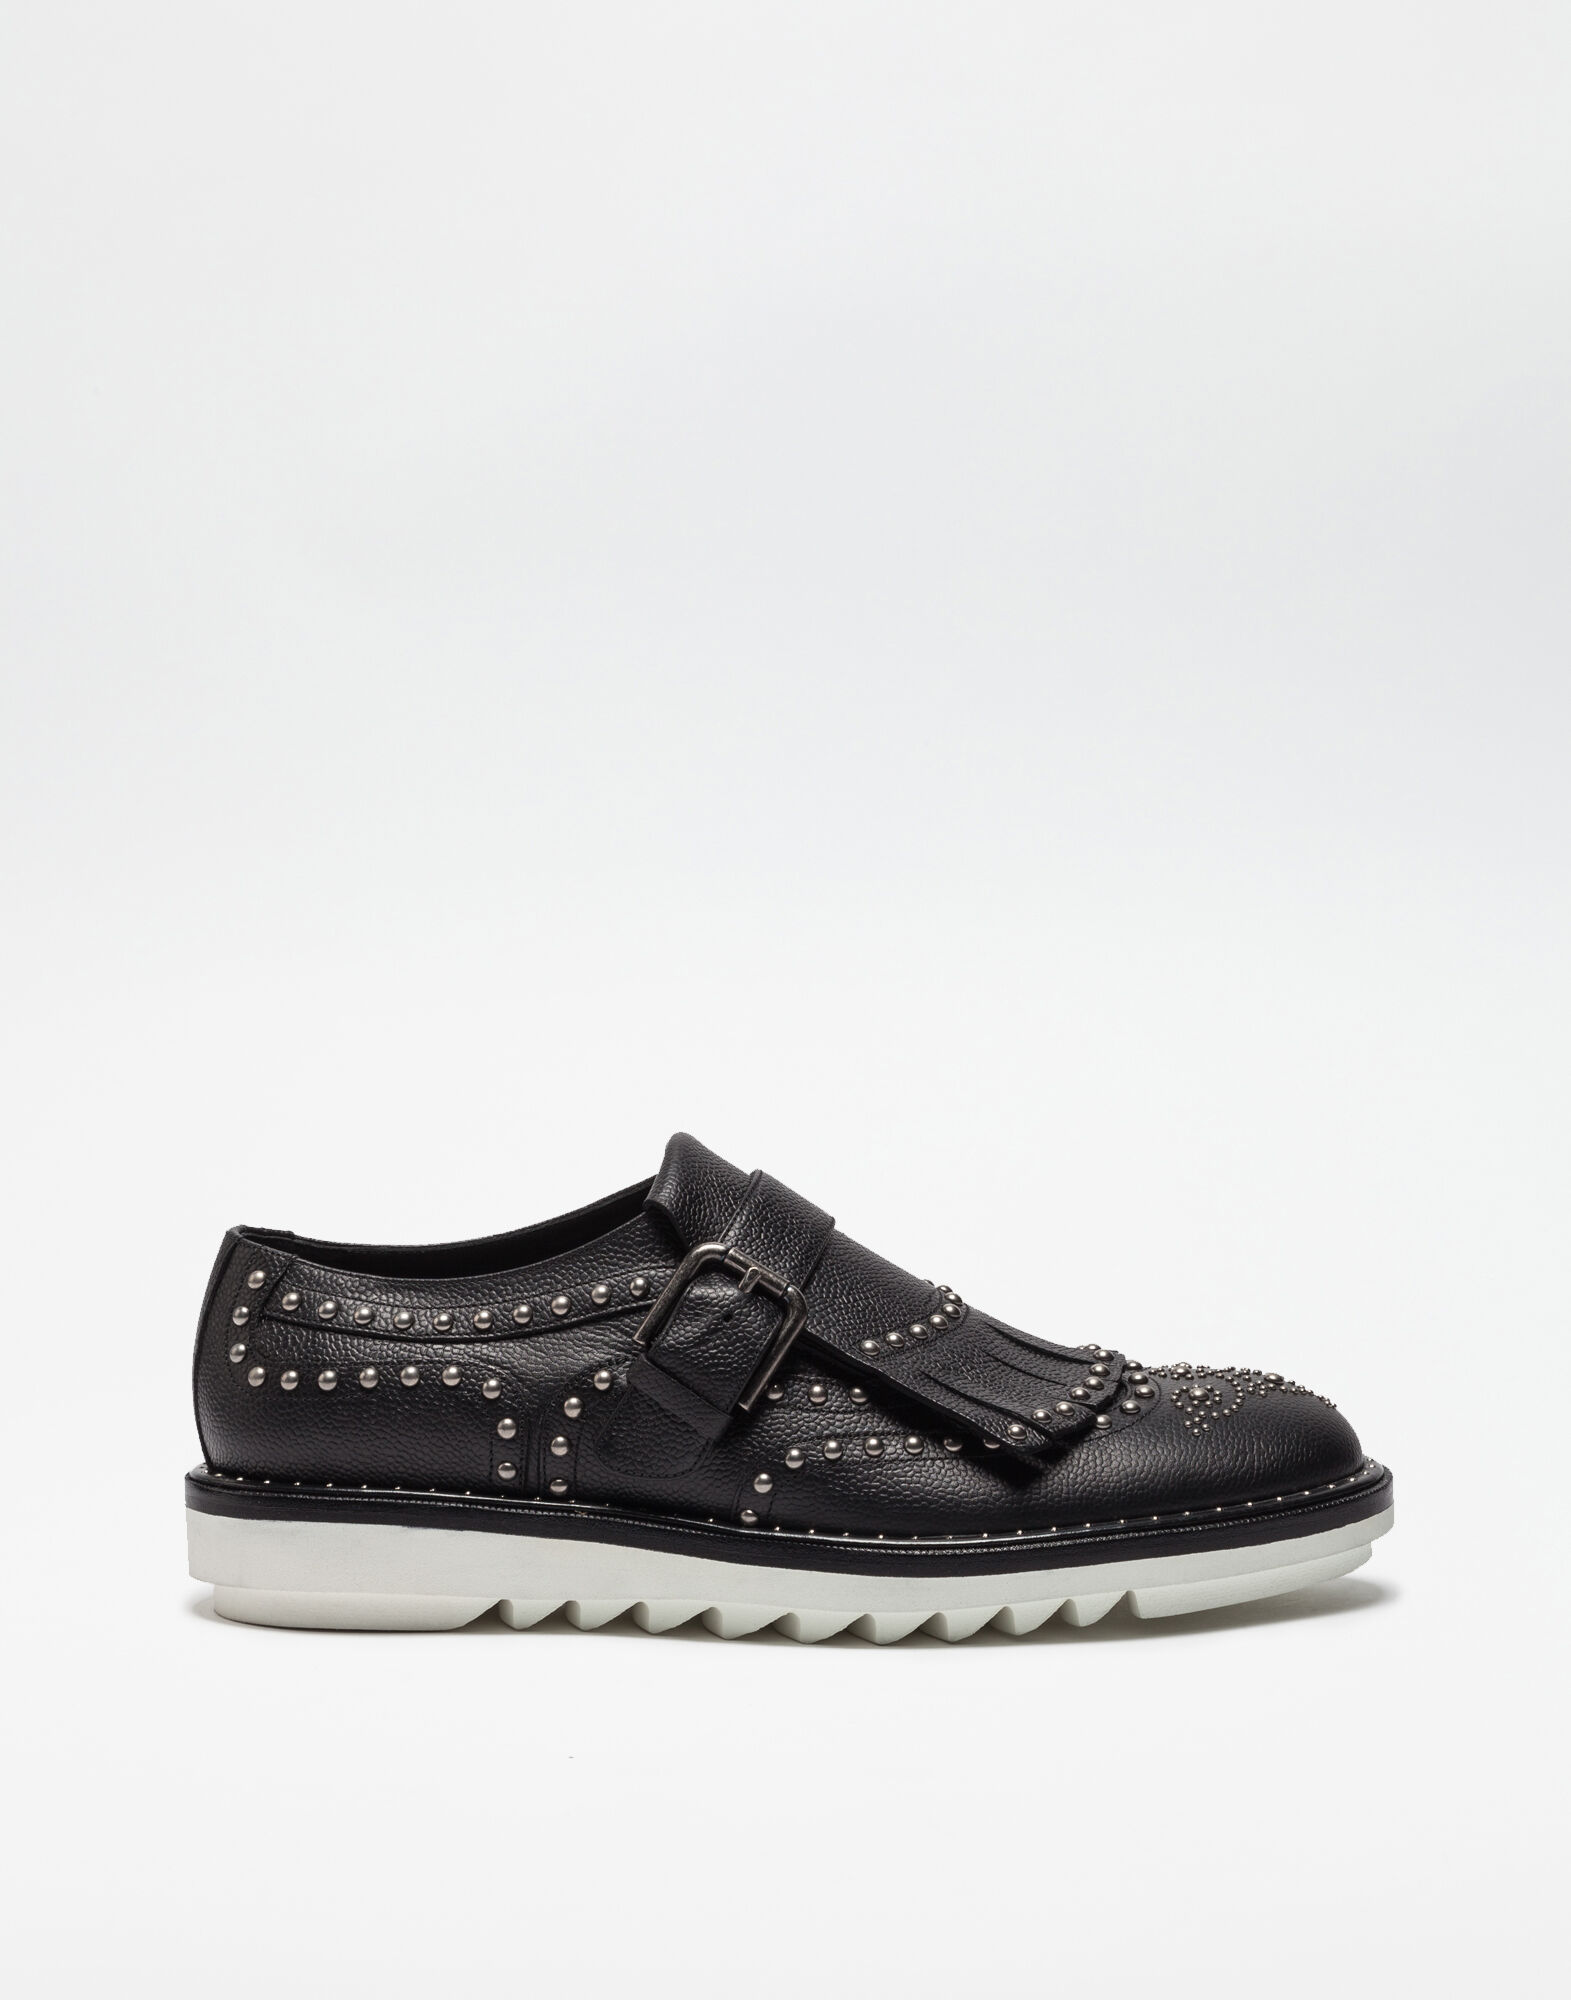 MONK WITH FRINGE LEATHER SHOES AND STUDS